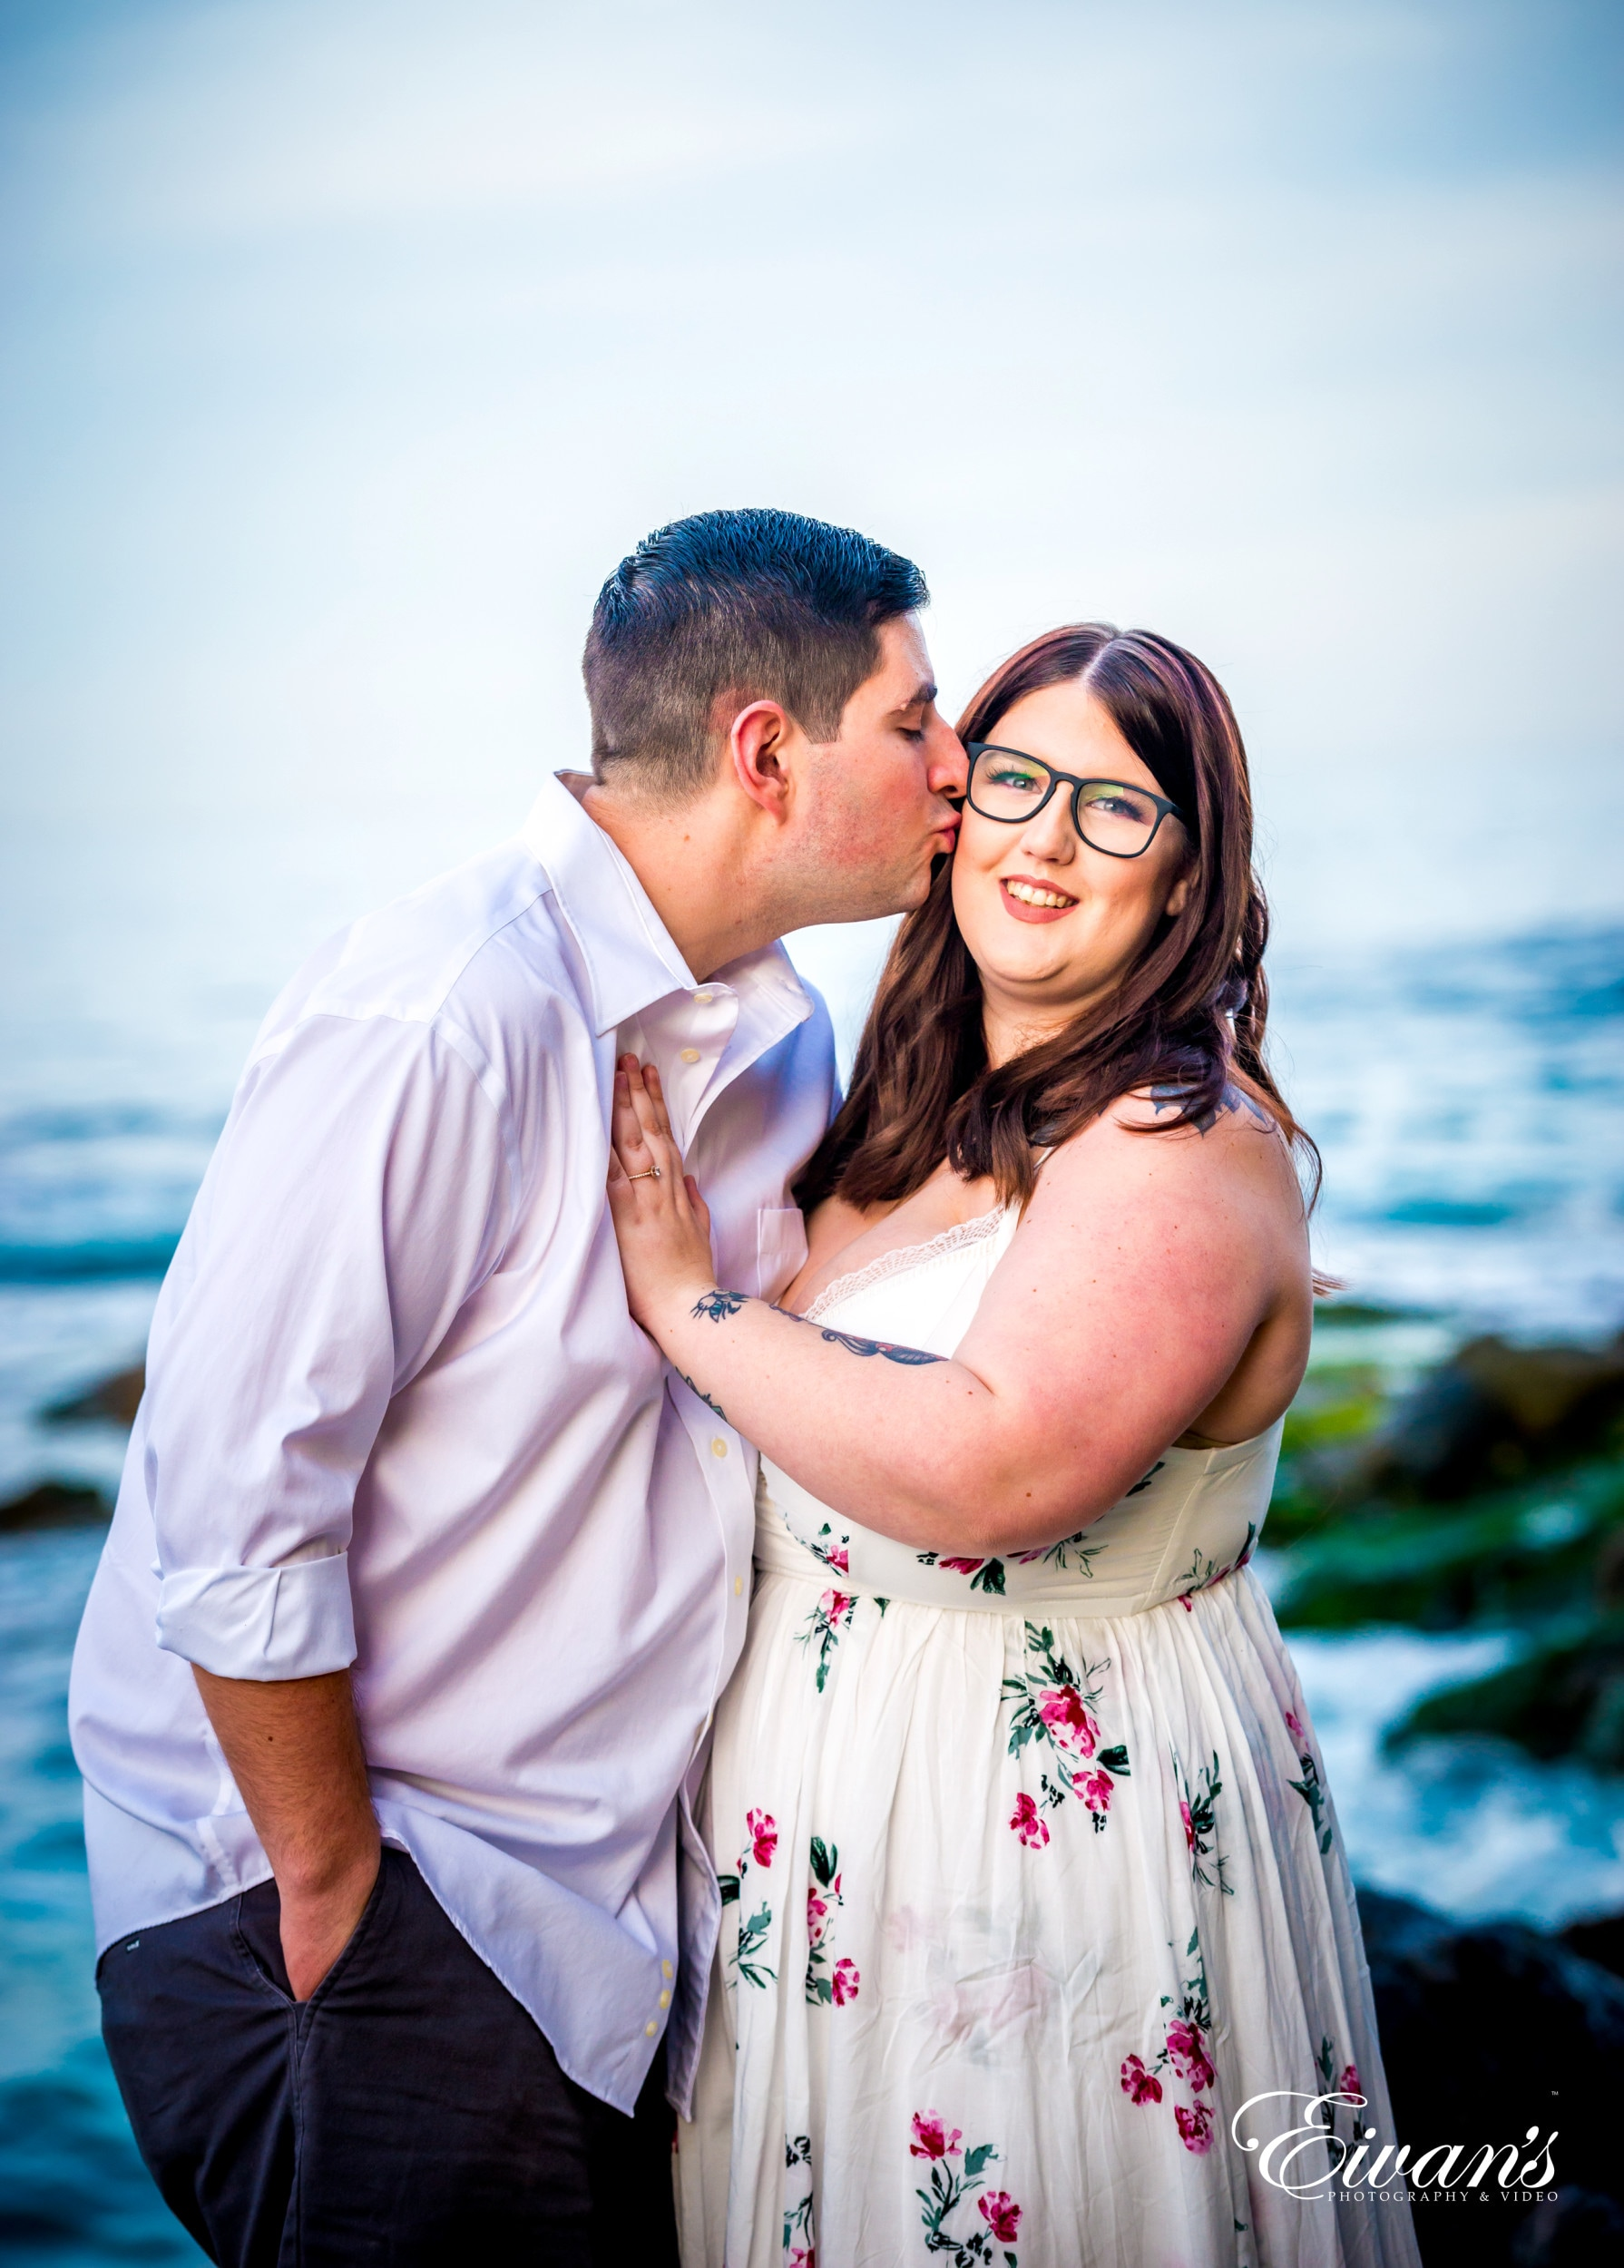 man in white dress shirt kissing woman in white and pink floral dress